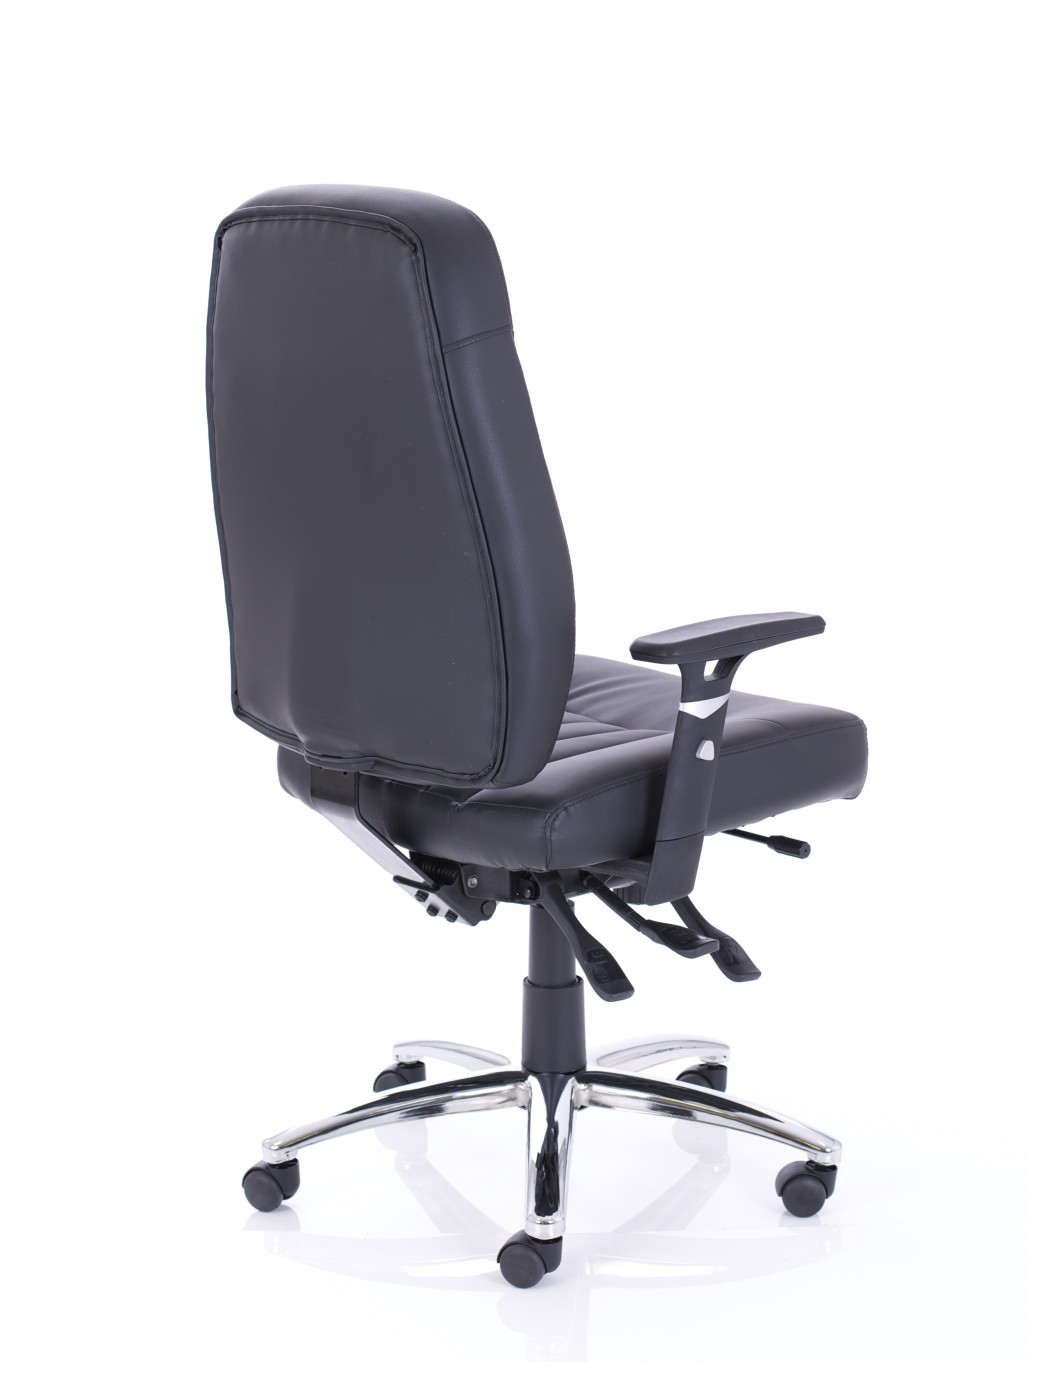 Dynamic Barcelona Plus Leather Office Chair 121 Office Furniture